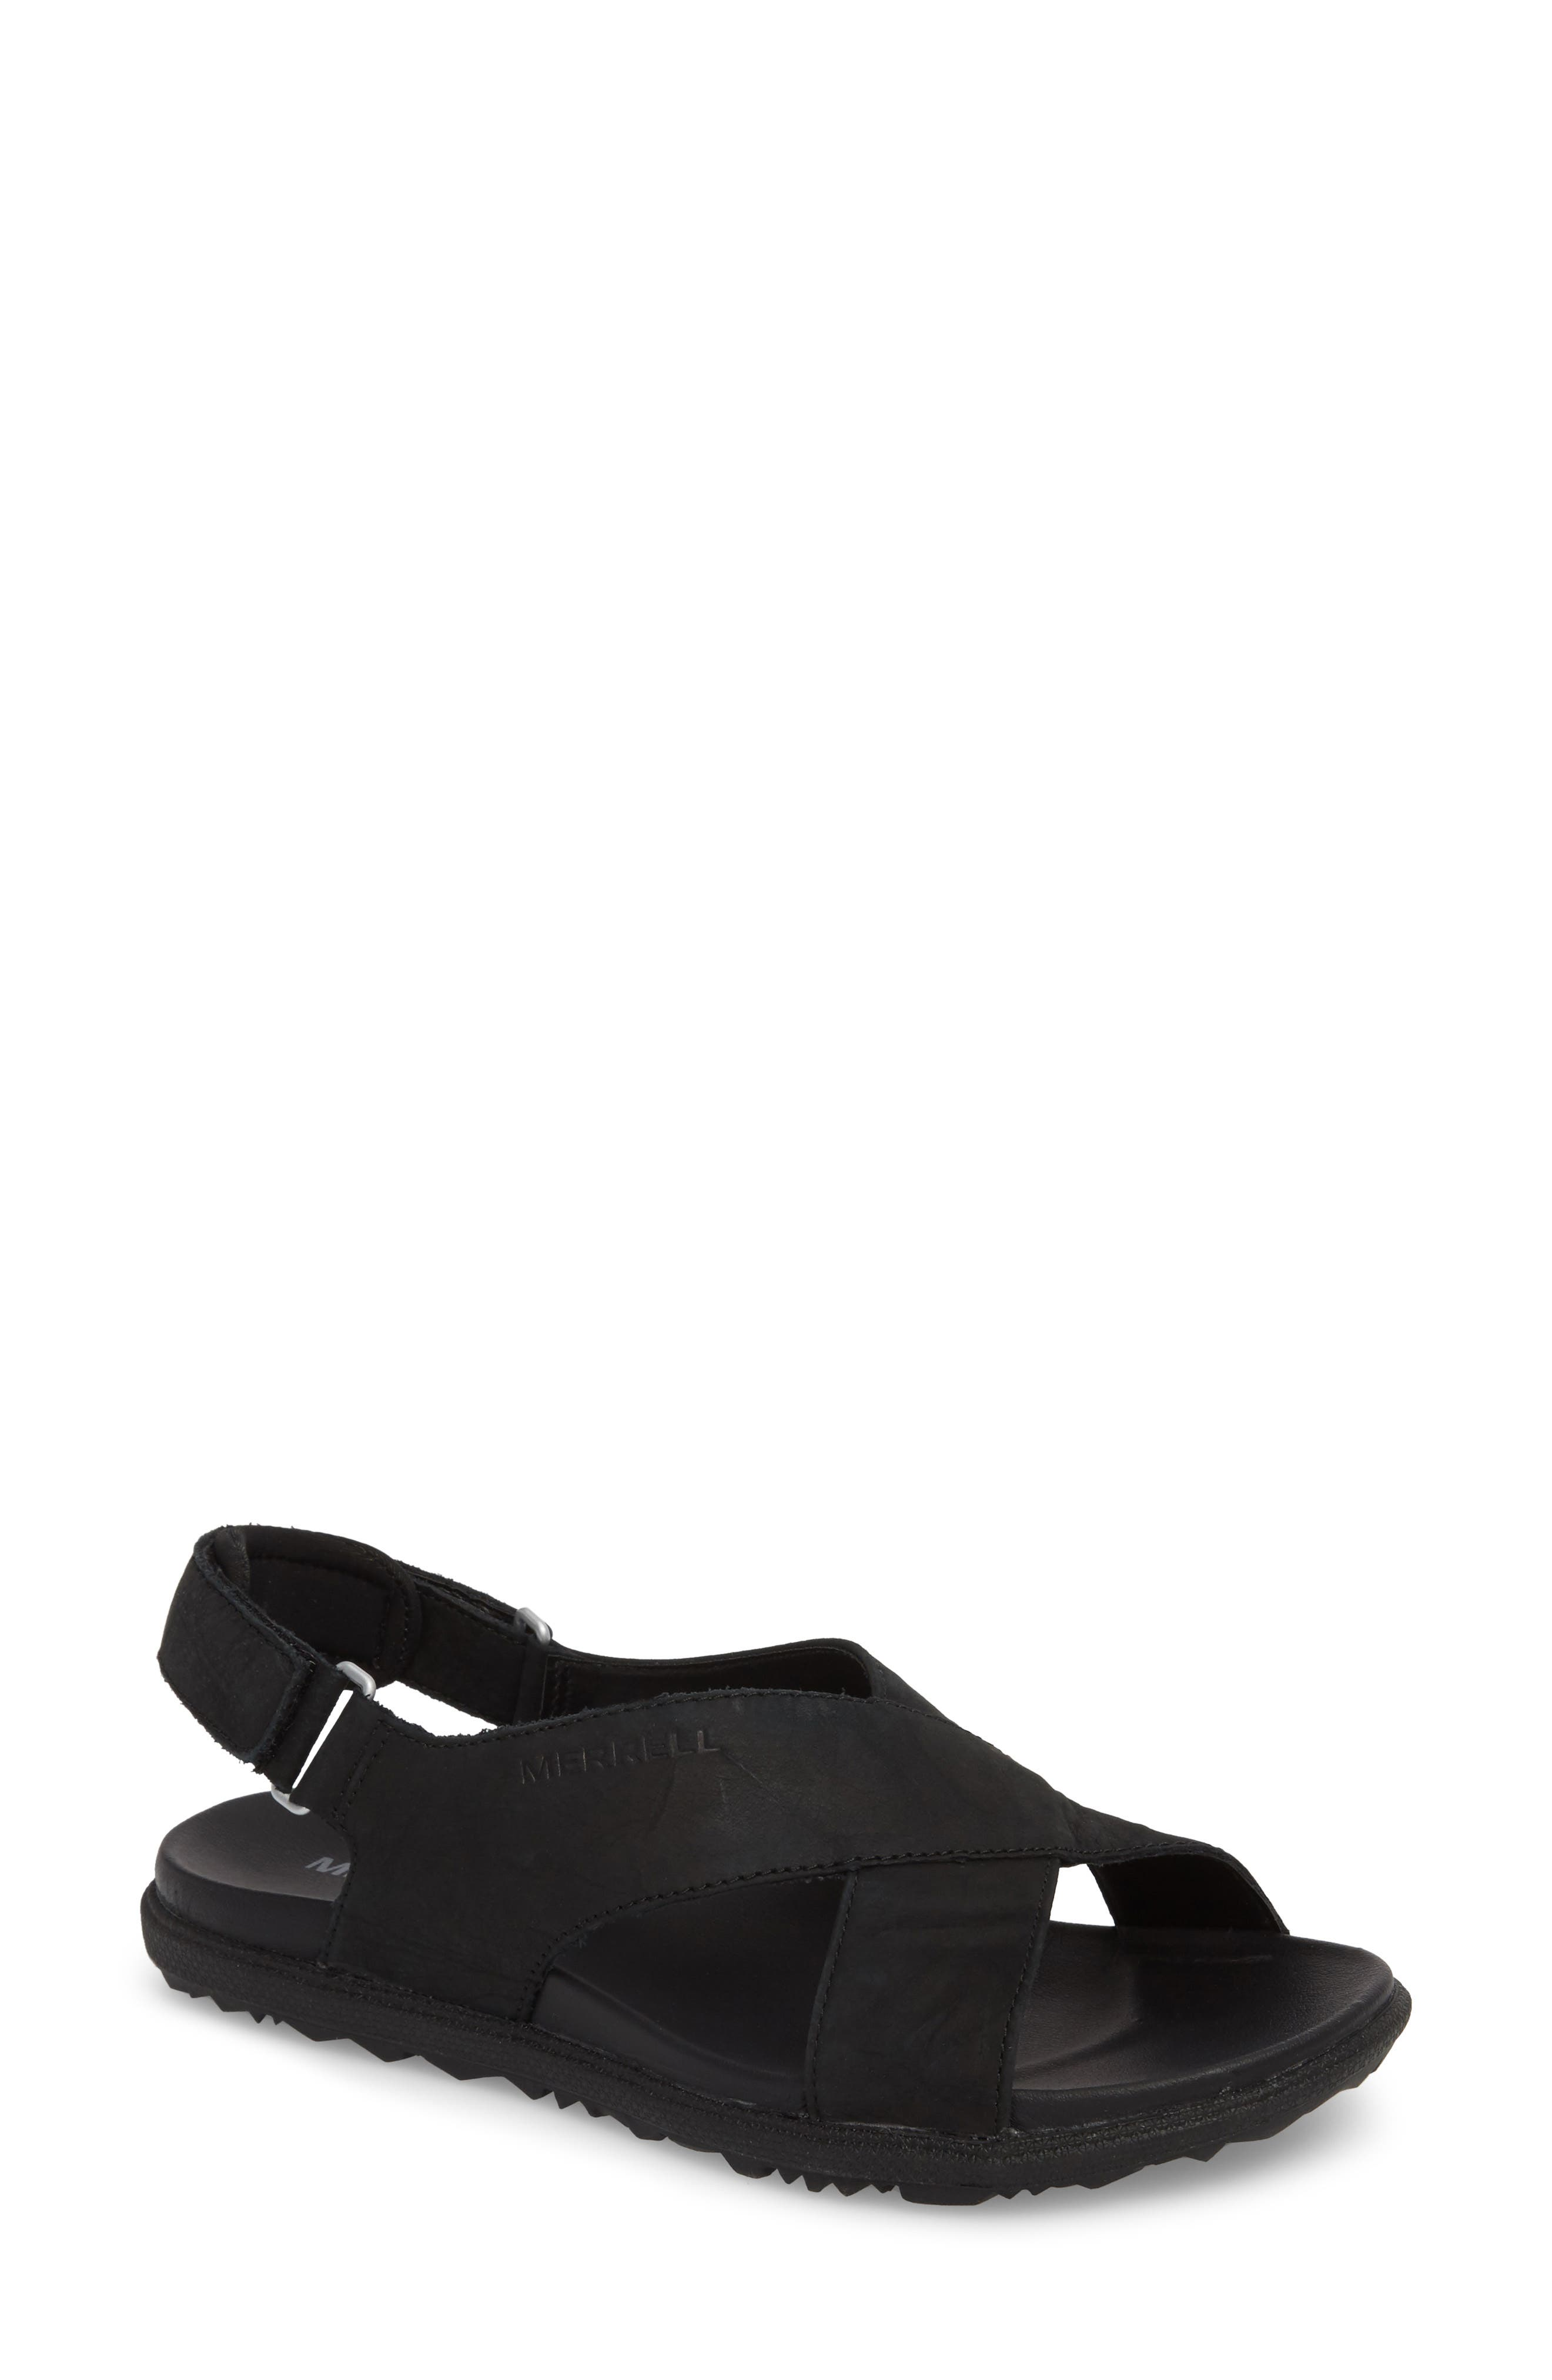 Around Town Sunvue Sandal,                         Main,                         color, 001